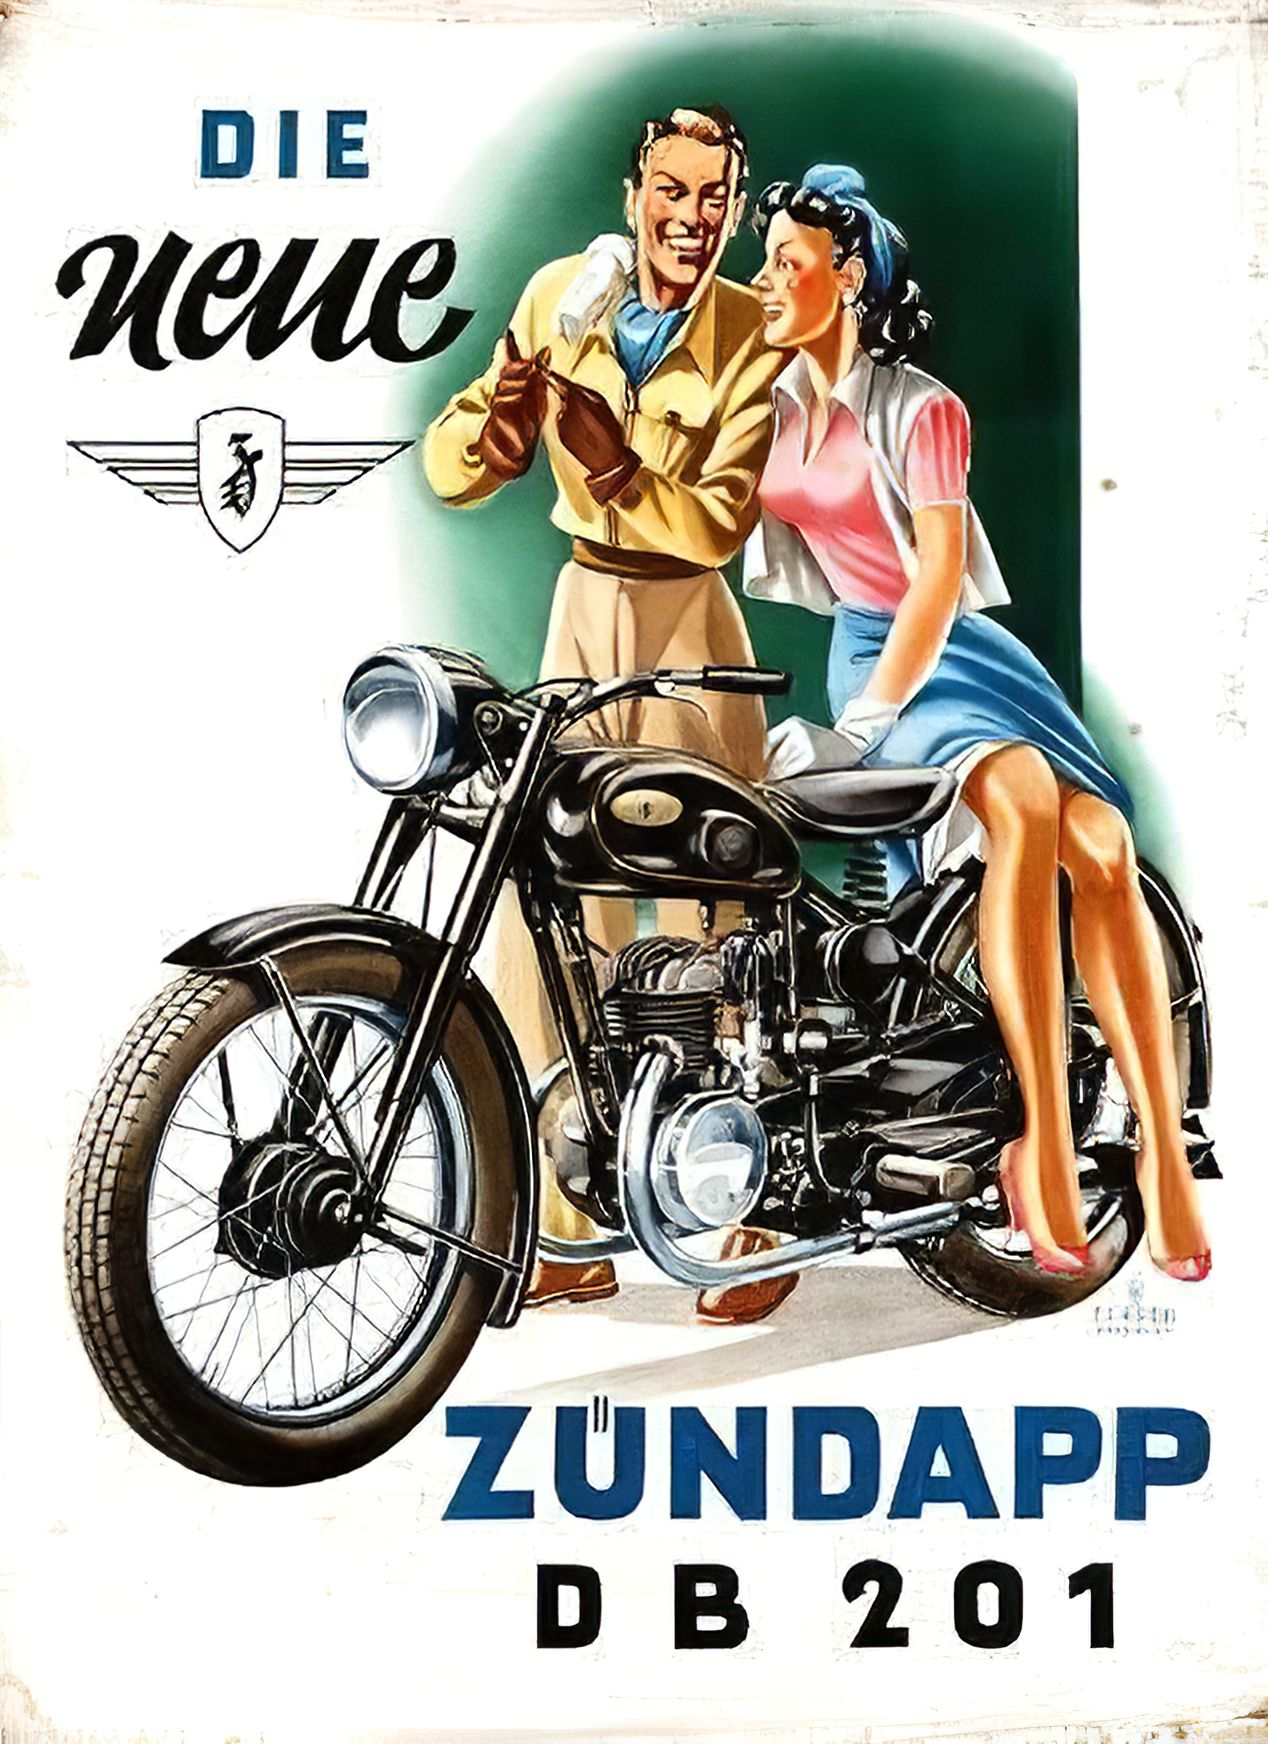 Zündapp DB 202 MOTORCYCLE POSTER POSTER PICTURE ART PRINT AFFICHE Decorative Plate DB202